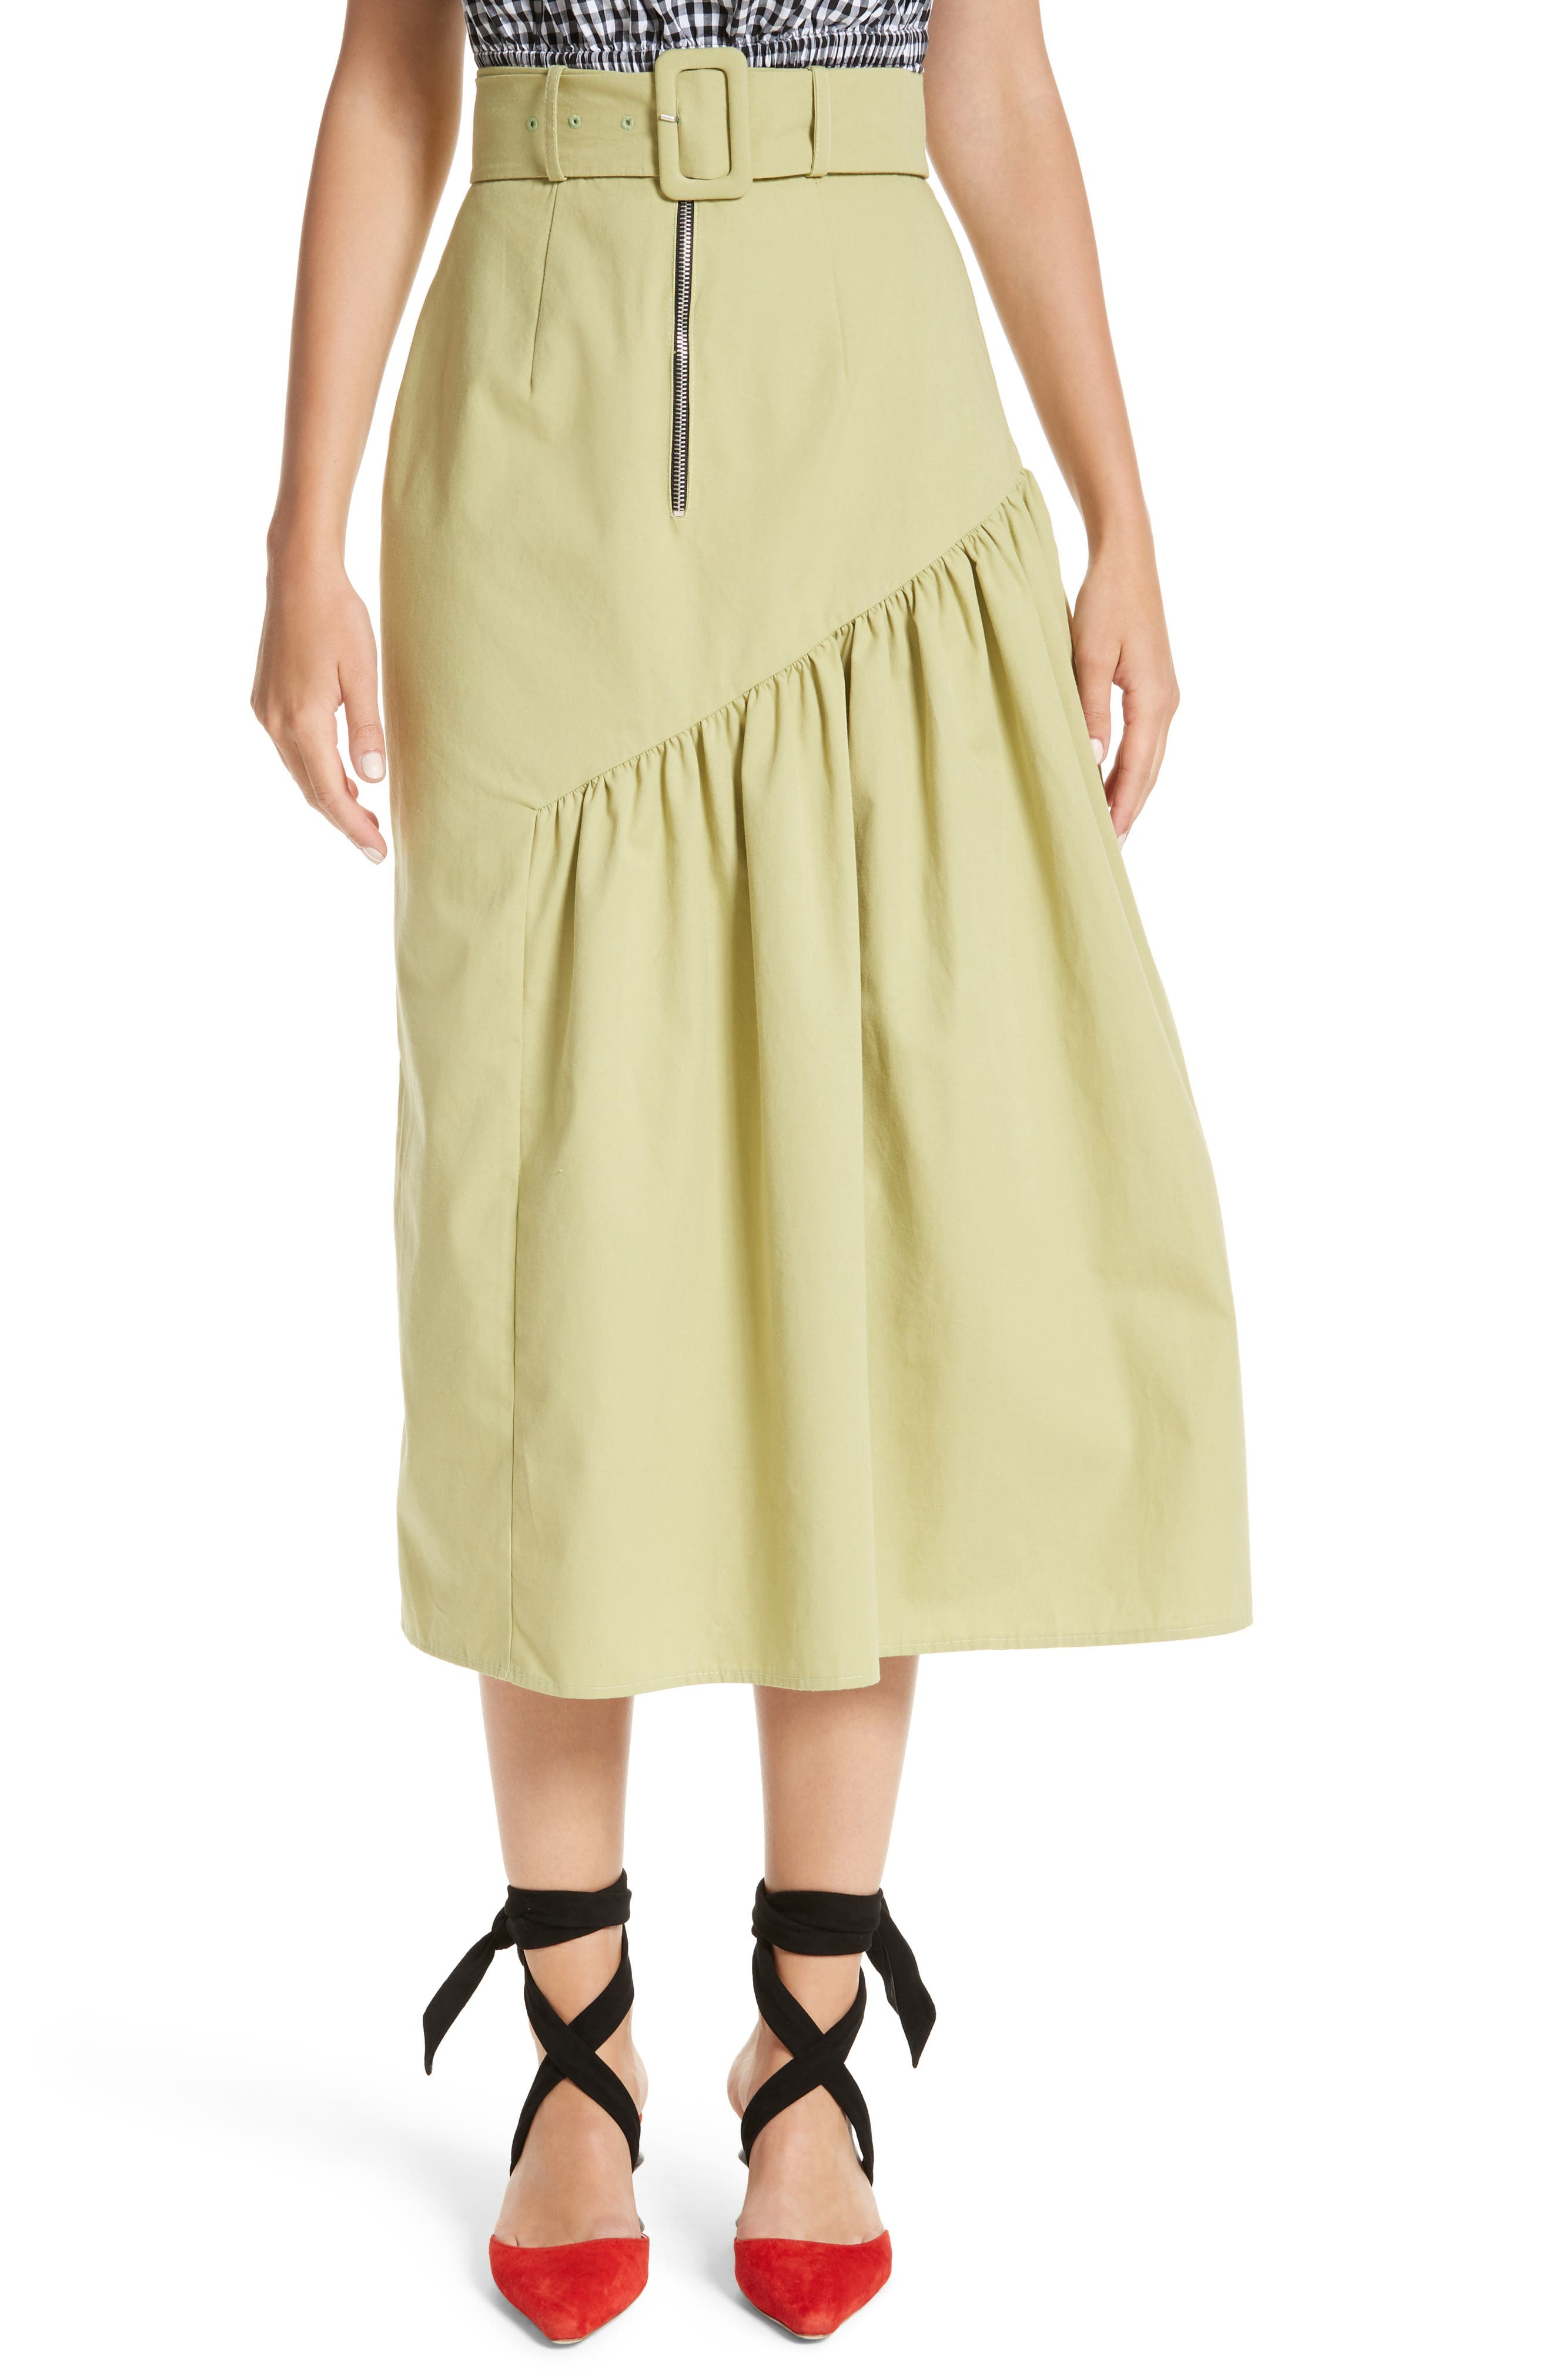 Belted High Waist Ruffle Skirt,                         Main,                         color, Cotton Sage Green